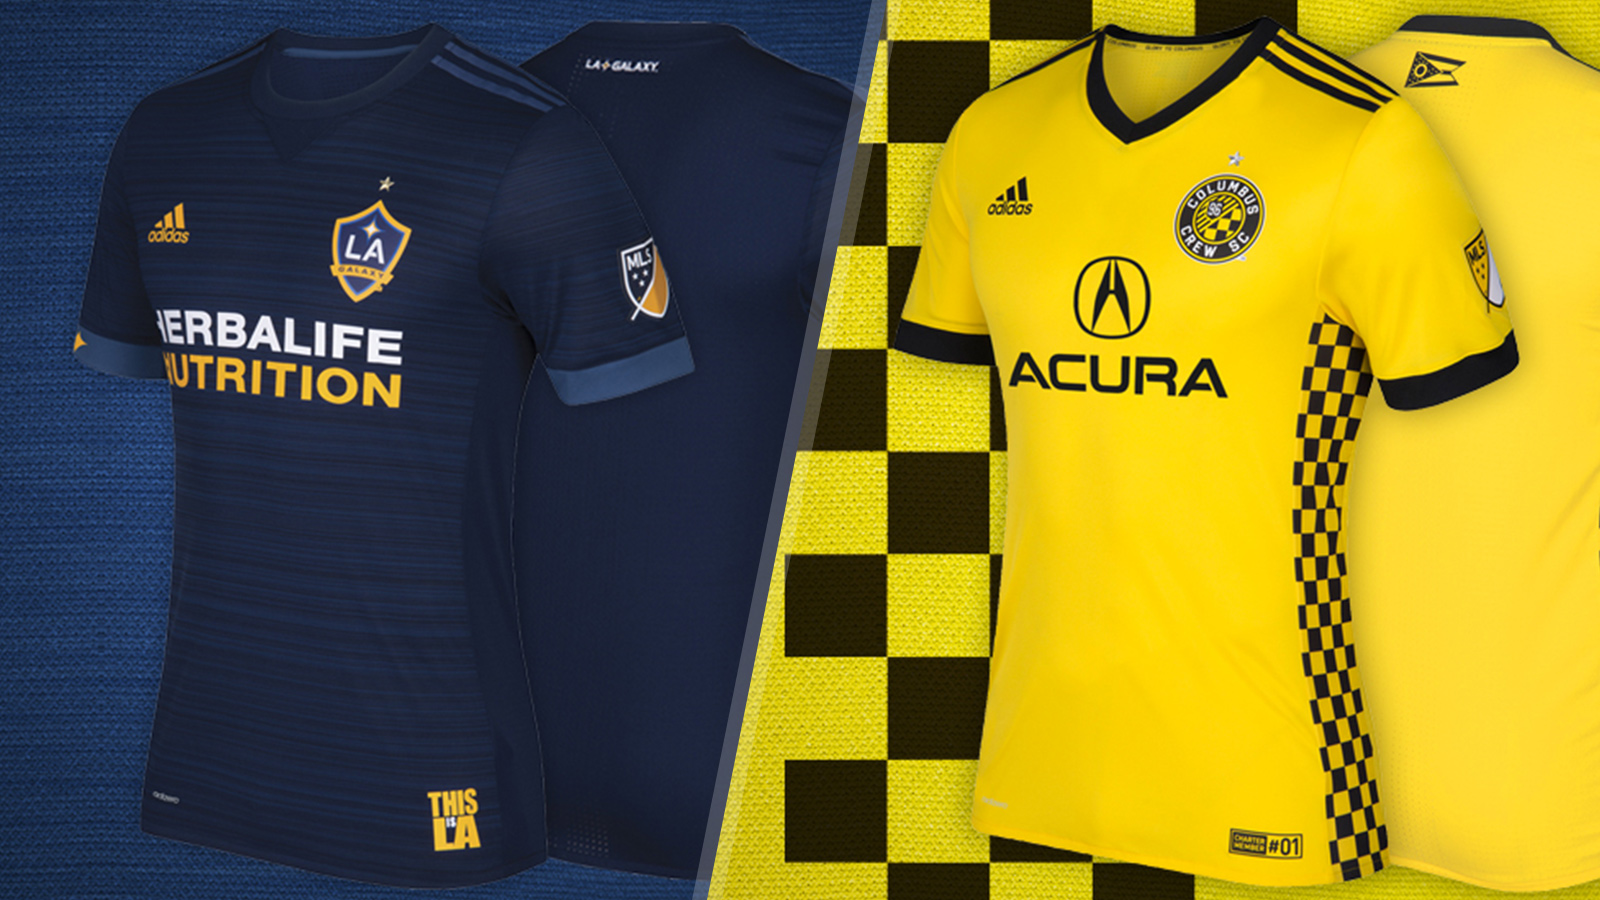 022517-MLS-kits-split